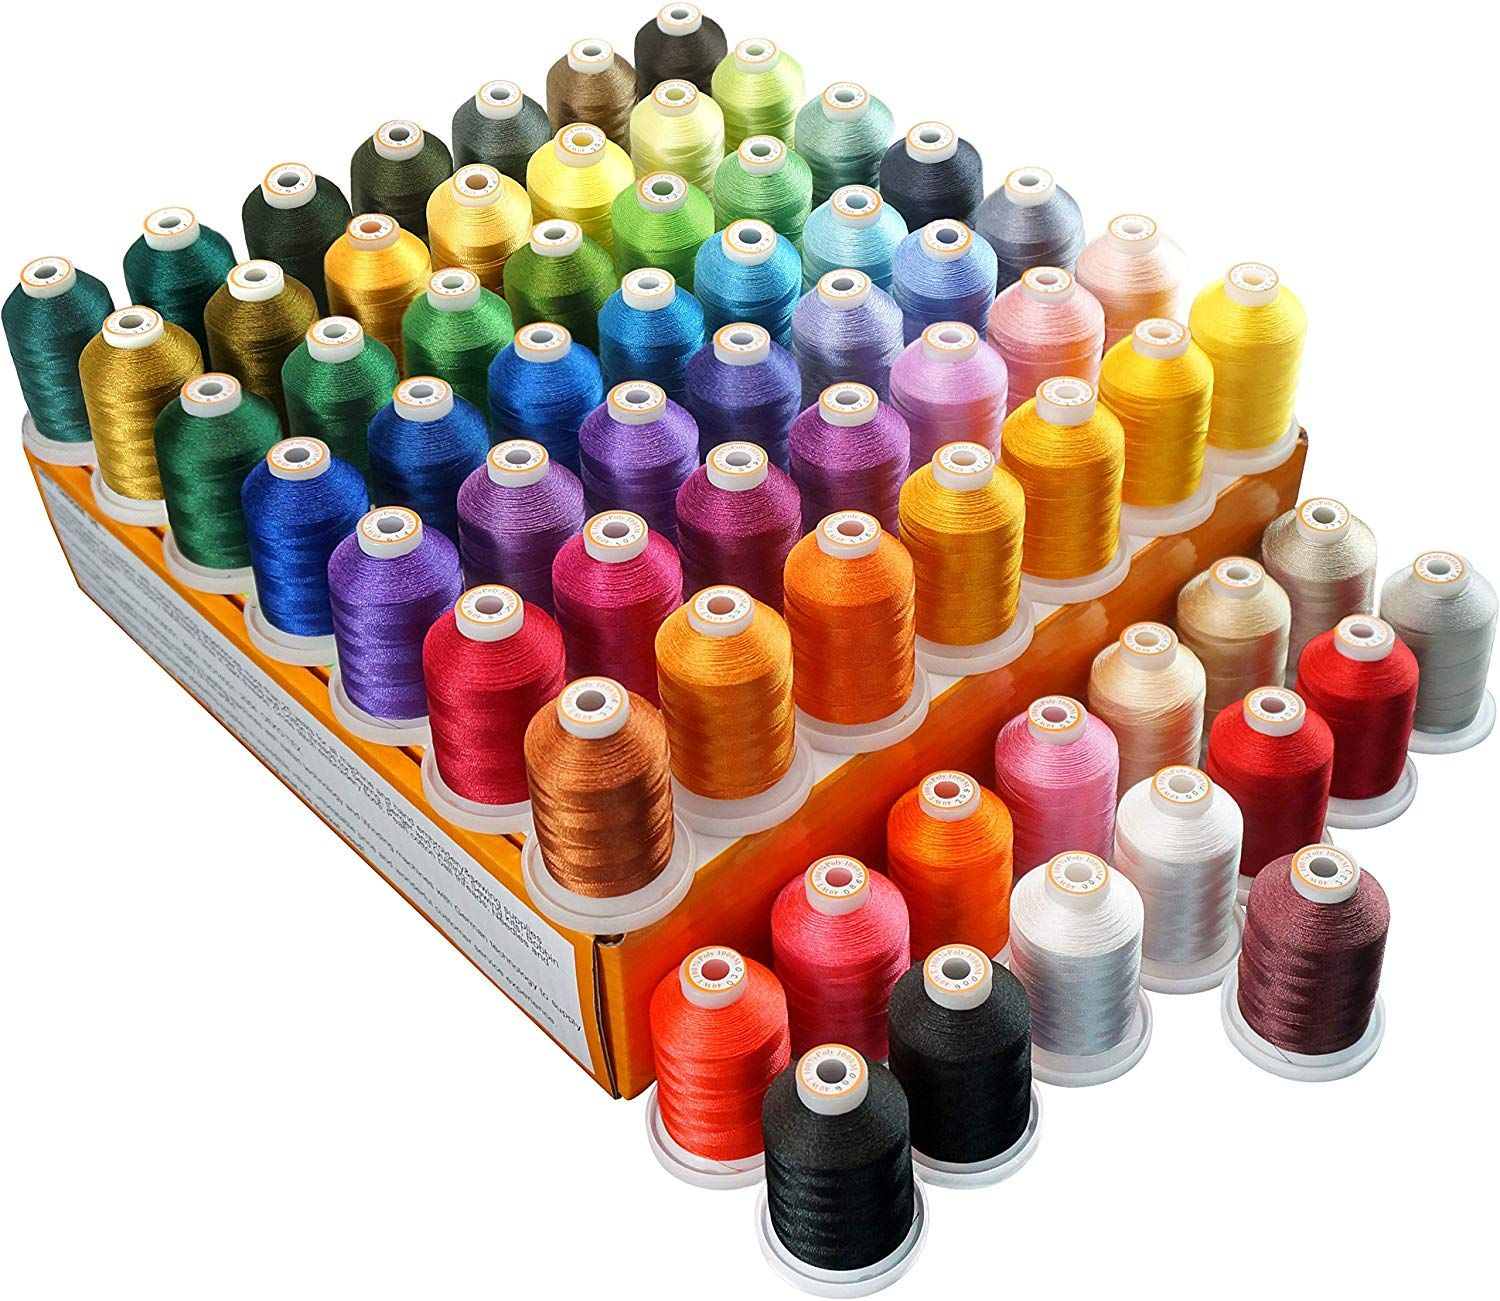 This Is A Great Deal And A Great Assortment Of Colors To Start Out Or Add To Your Collection This In 2020 With Images Machine Embroidery Sewing Machine Cover Embroidery Projects